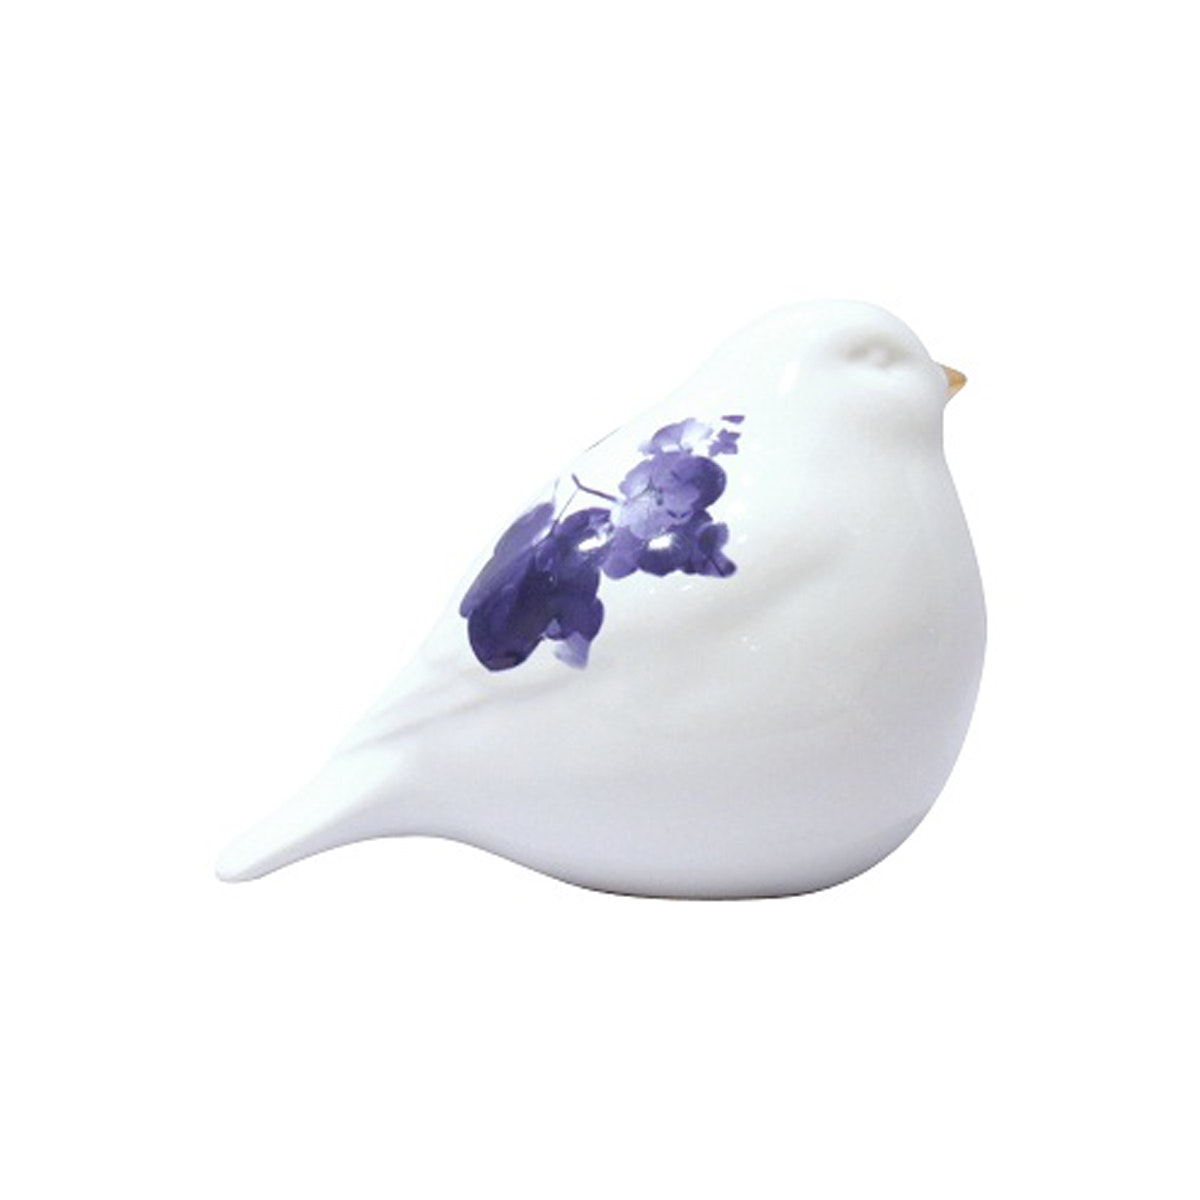 Vivere Object Deco Birdy Flower White Blue 13cm